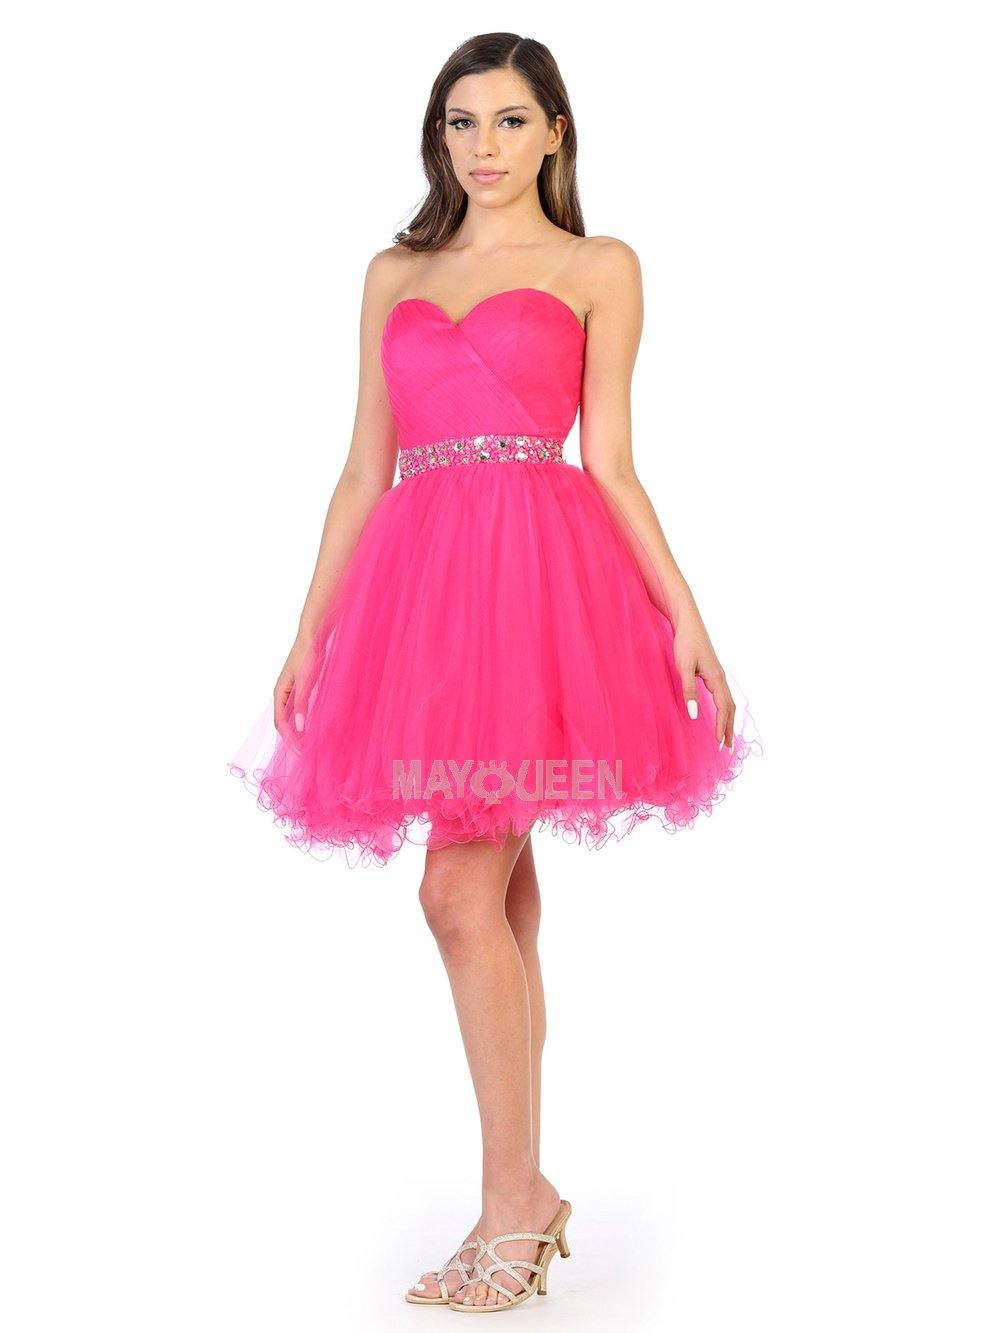 Strapless Short Dress Homecoming - The Dress Outlet Fuchsia